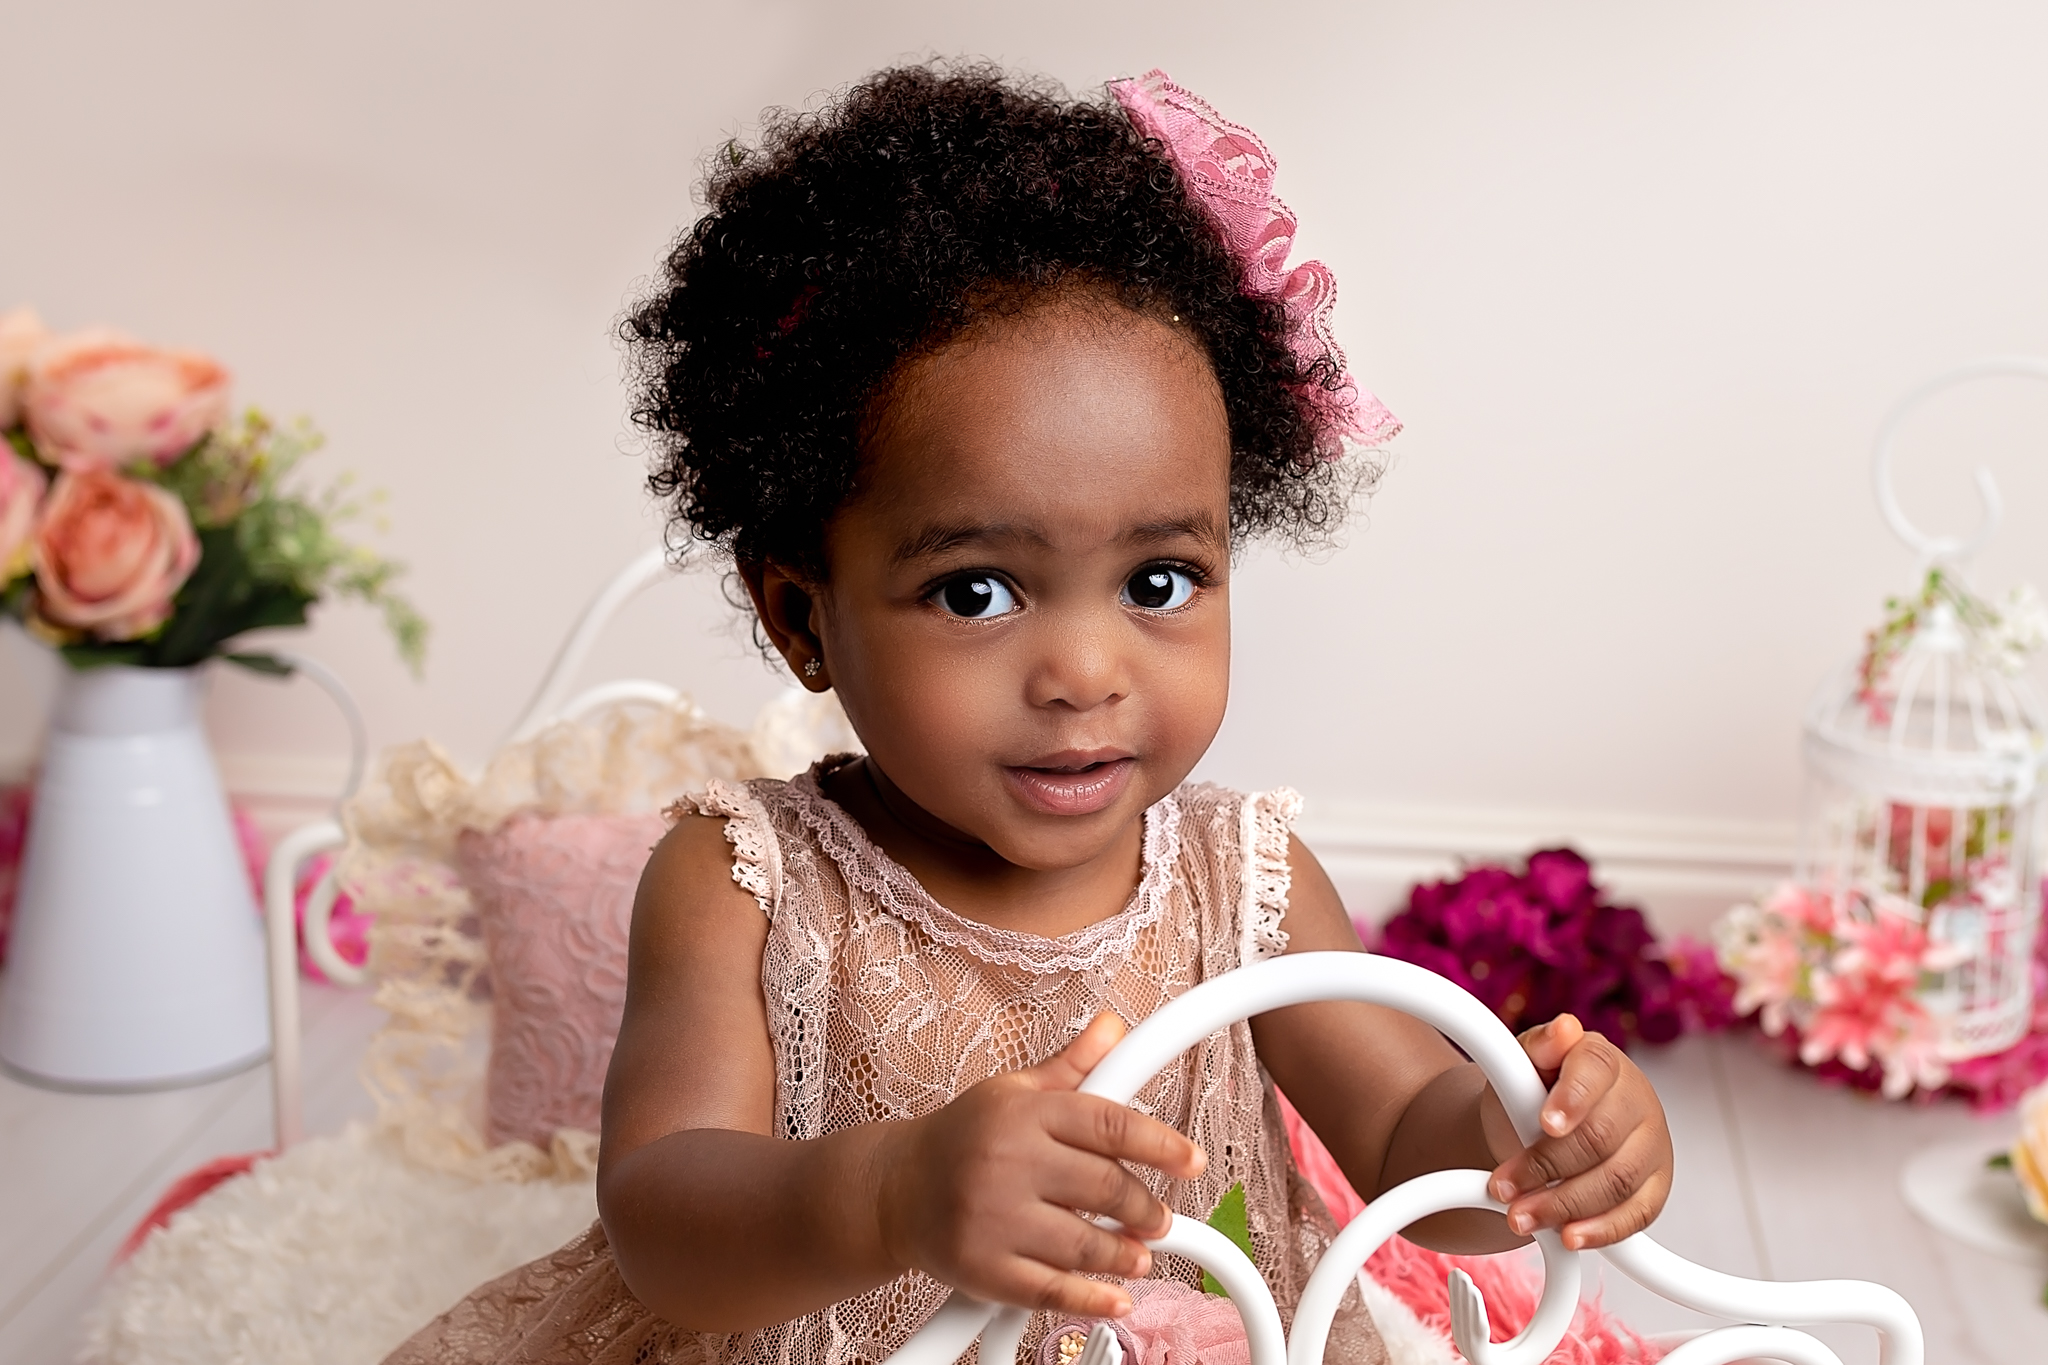 Professional baby photography Leeds, Bradford, York, Harrogate, Wakefield: close up portrait of 1 year old baby girl